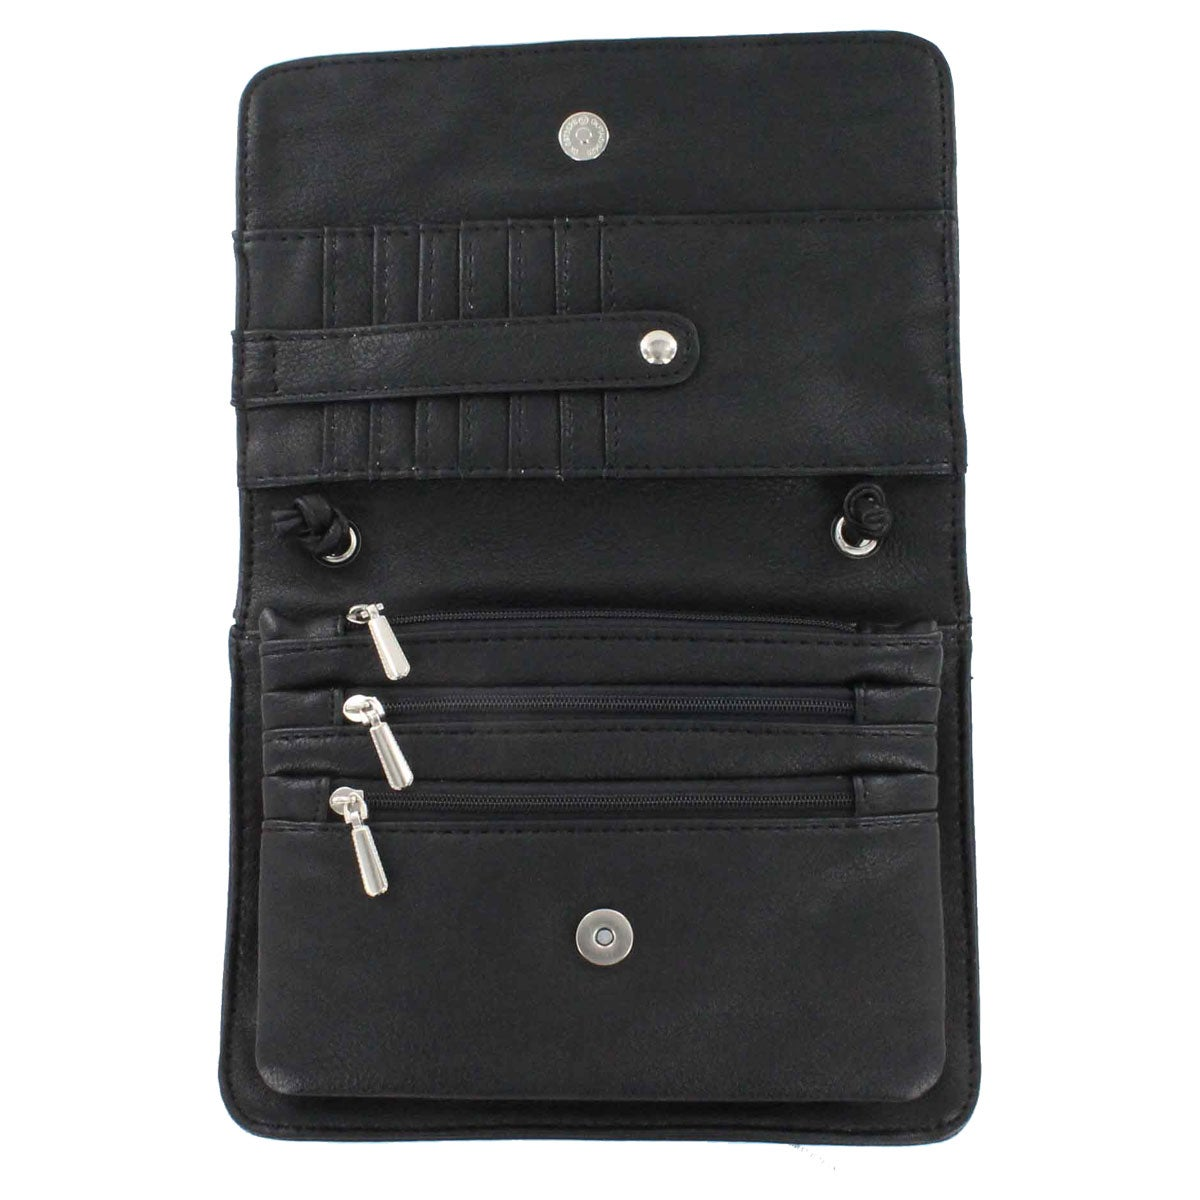 Lds black frnt flap cross body organizer